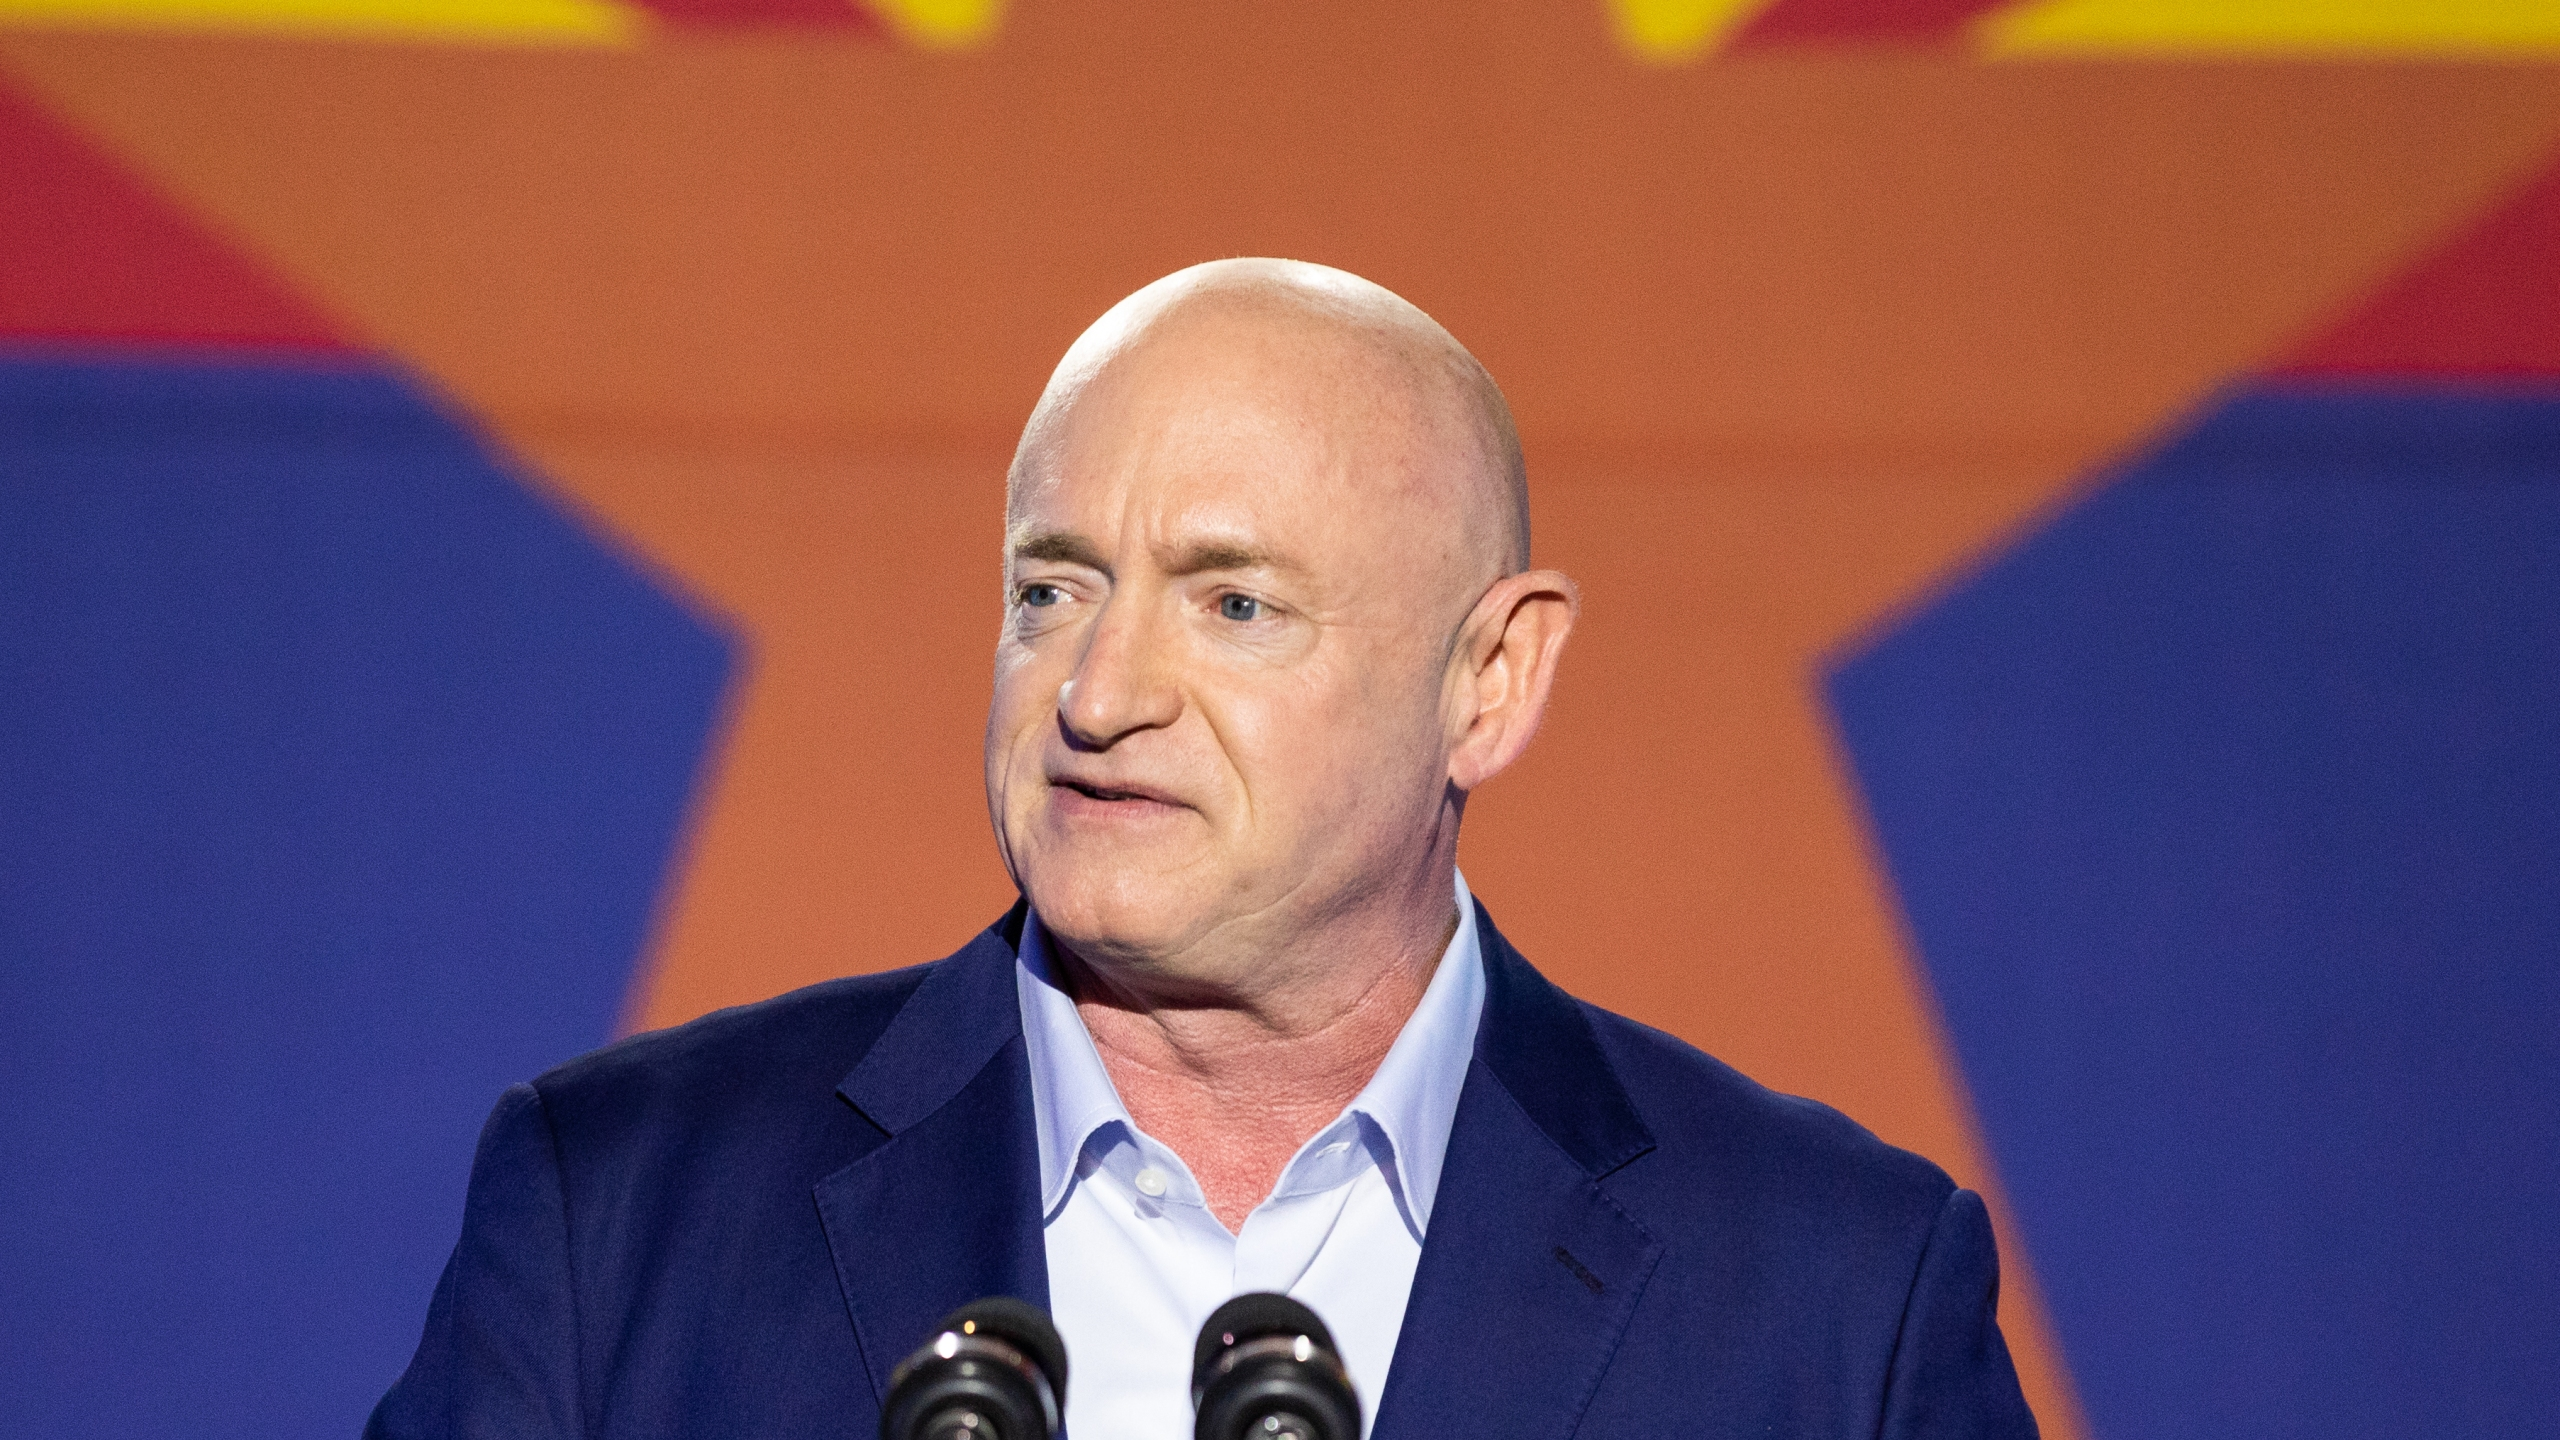 Democratic U.S. Senate candidate Mark Kelly speaks to supporters in Tucson, Arizona. (Photo by Courtney Pedroza/Getty Images)